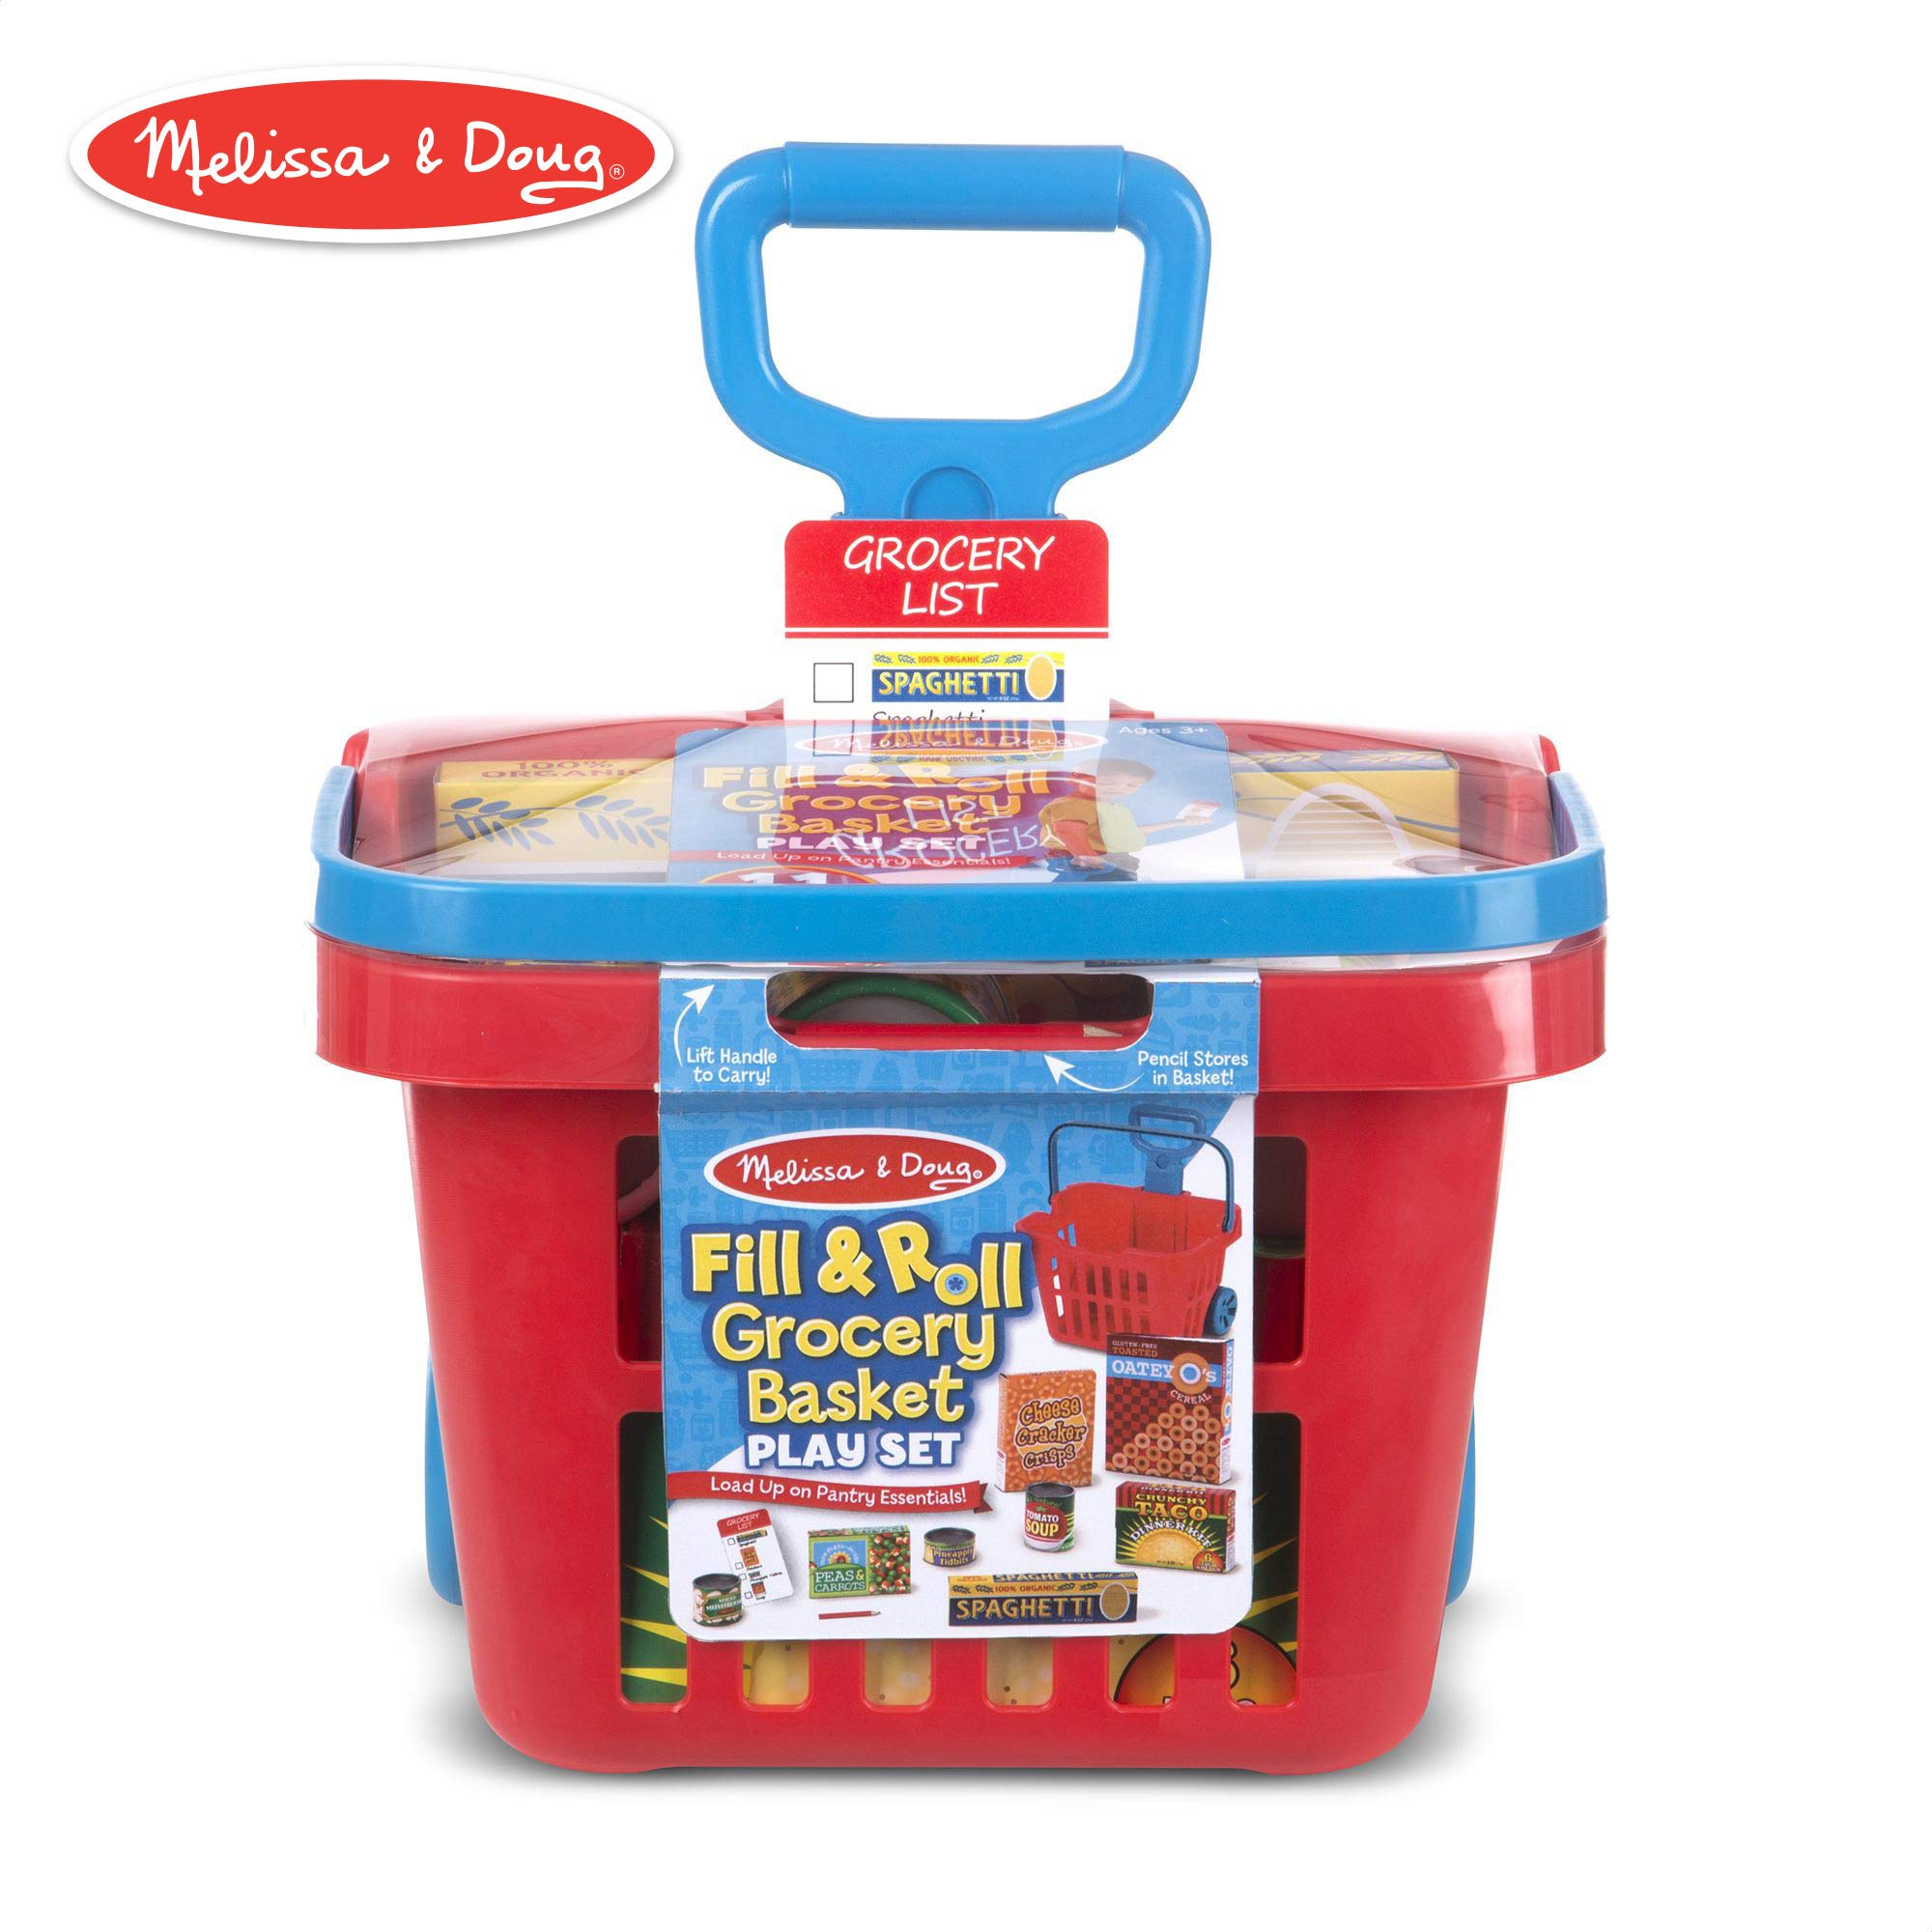 Melissa & Doug Fill & Roll Grocery Basket Play Set (Play Food, Durable Construction, 11 Pieces, 22'' H x 10.25'' W x 11.75'' L)